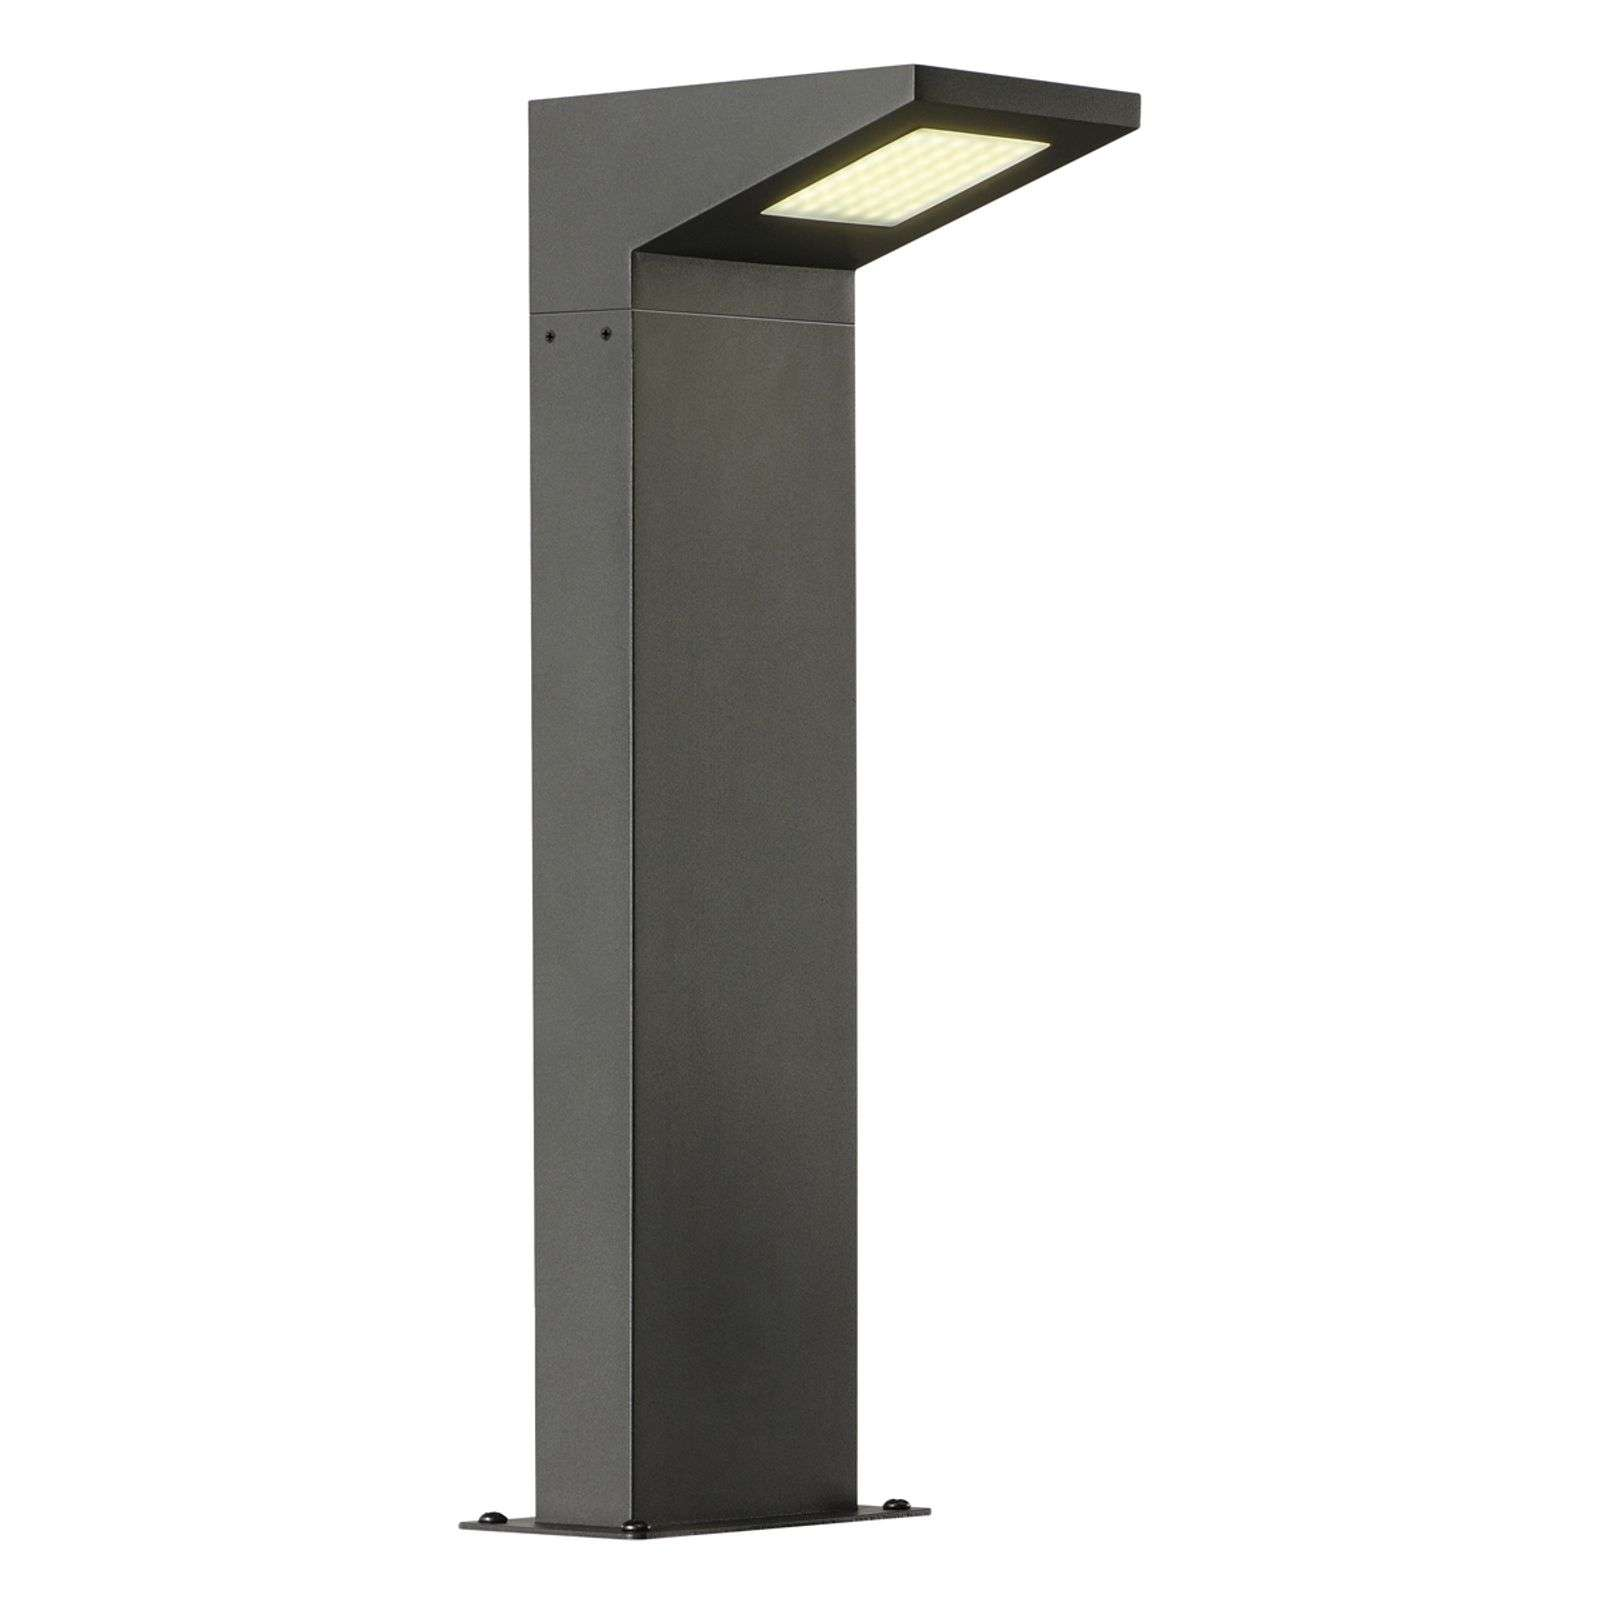 Luminaire pour socle moderne LED IPERI anthracite